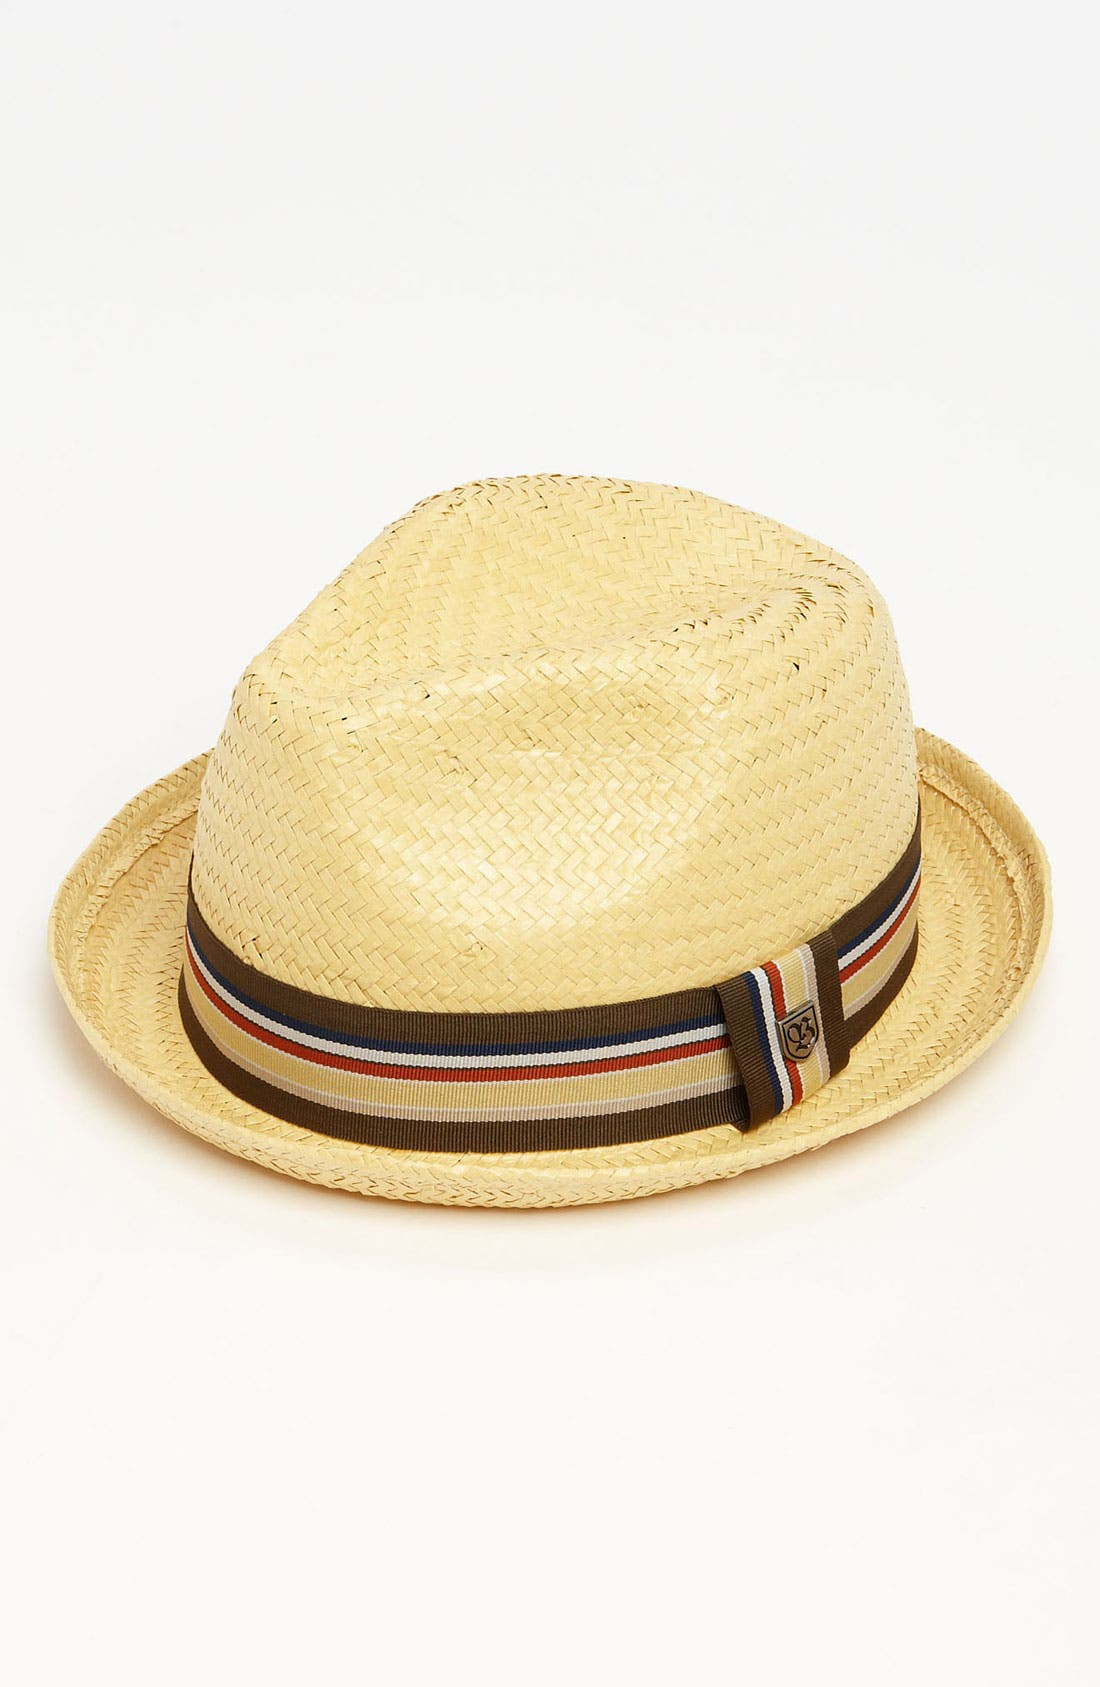 'Castor' Straw Fedora,                             Main thumbnail 1, color,                             Tan